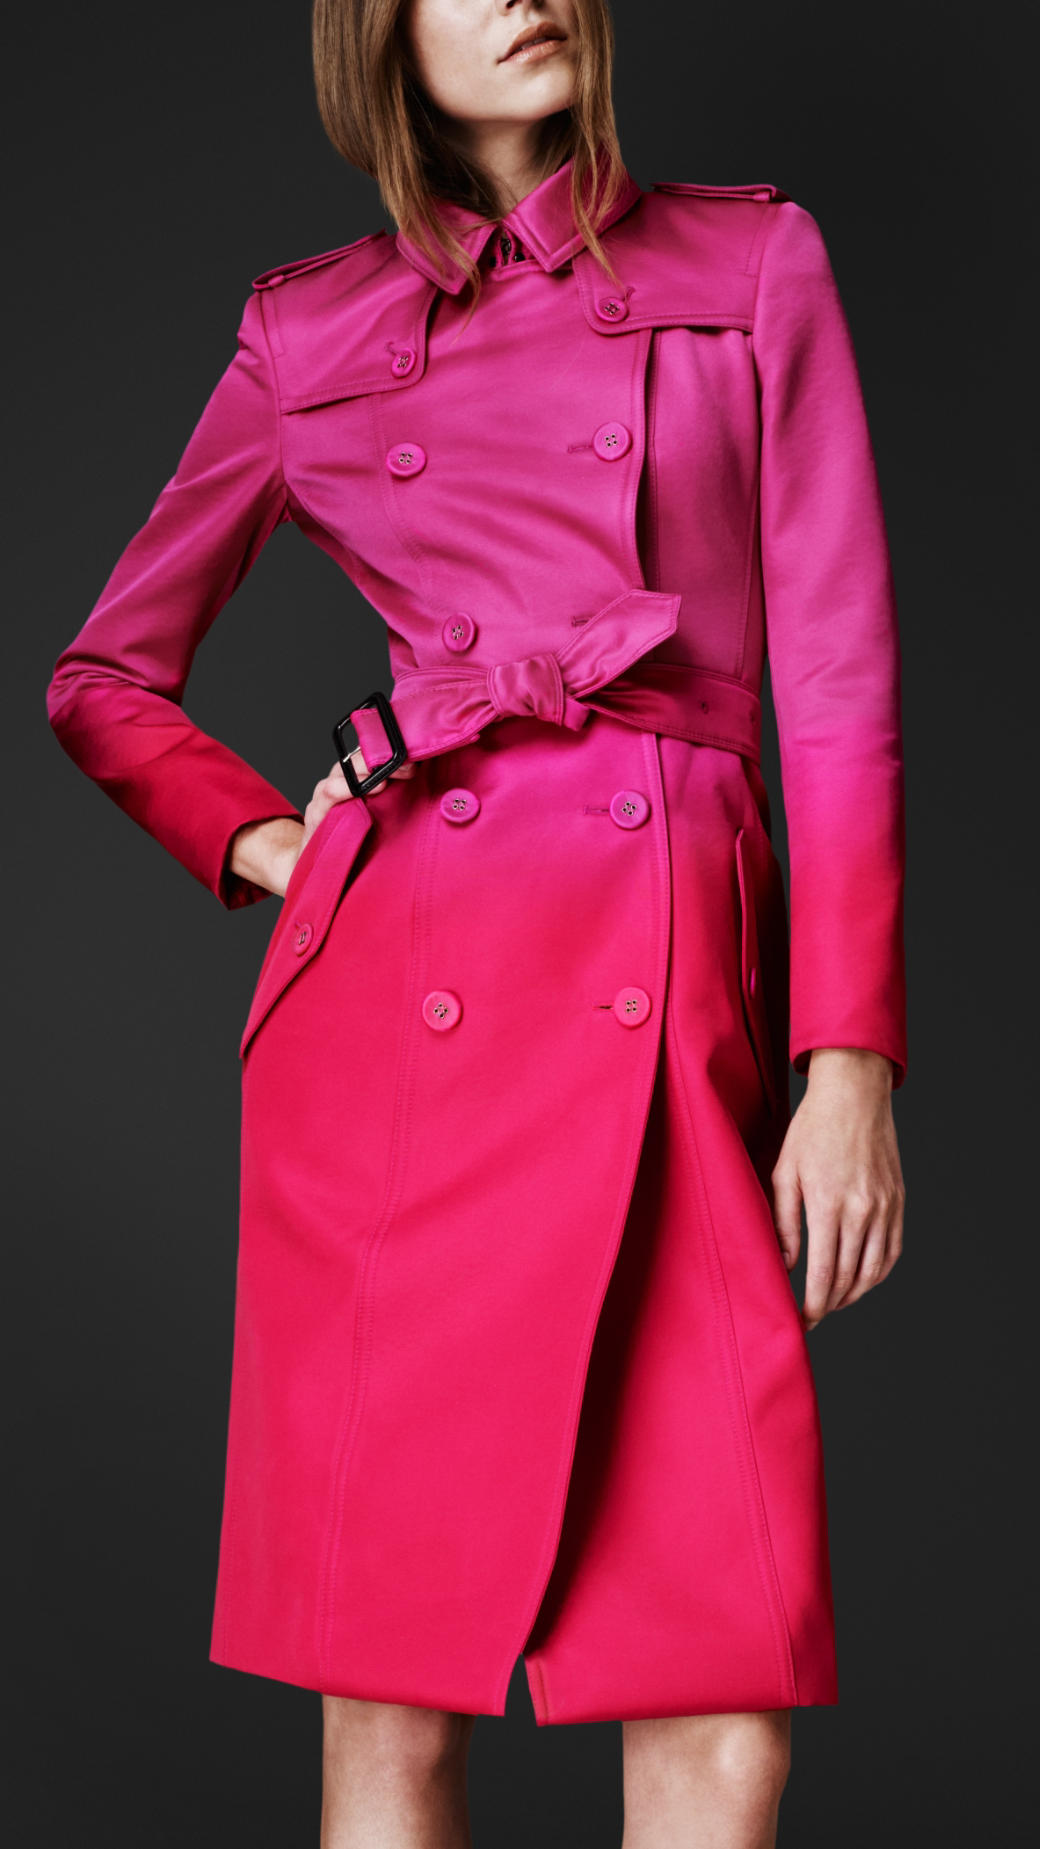 Lyst - Burberry Prorsum Satin Dégradé Trench Coat in Pink